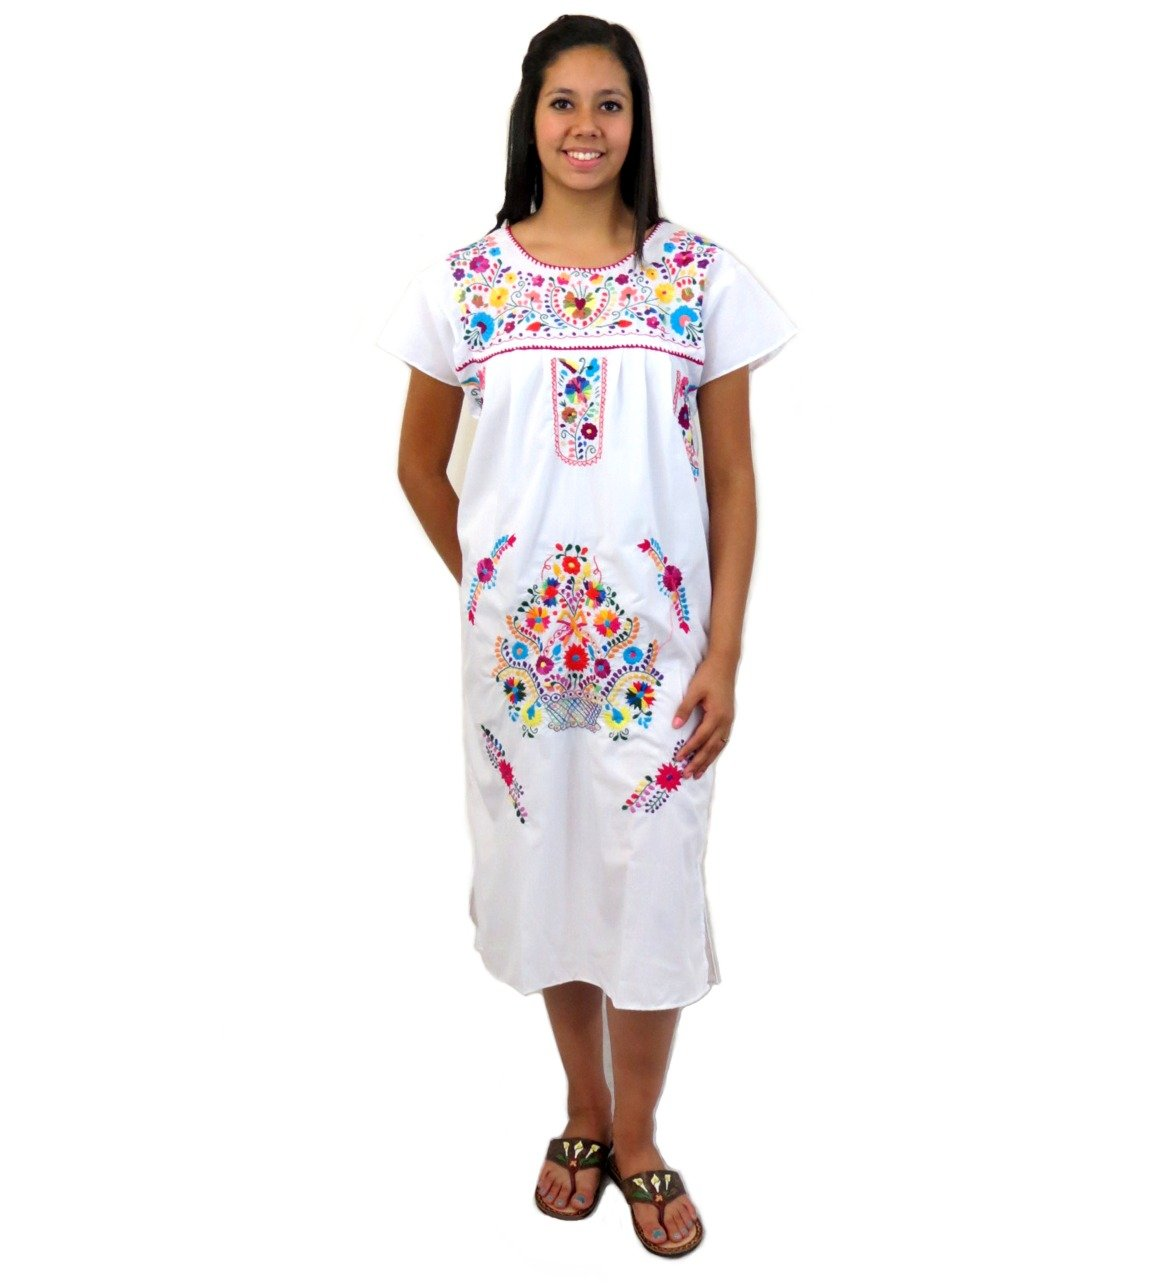 Women's Mexican Tehuacan Mid-Calf White Tunic Campesina Dress - DeluxeAdultCostumes.com